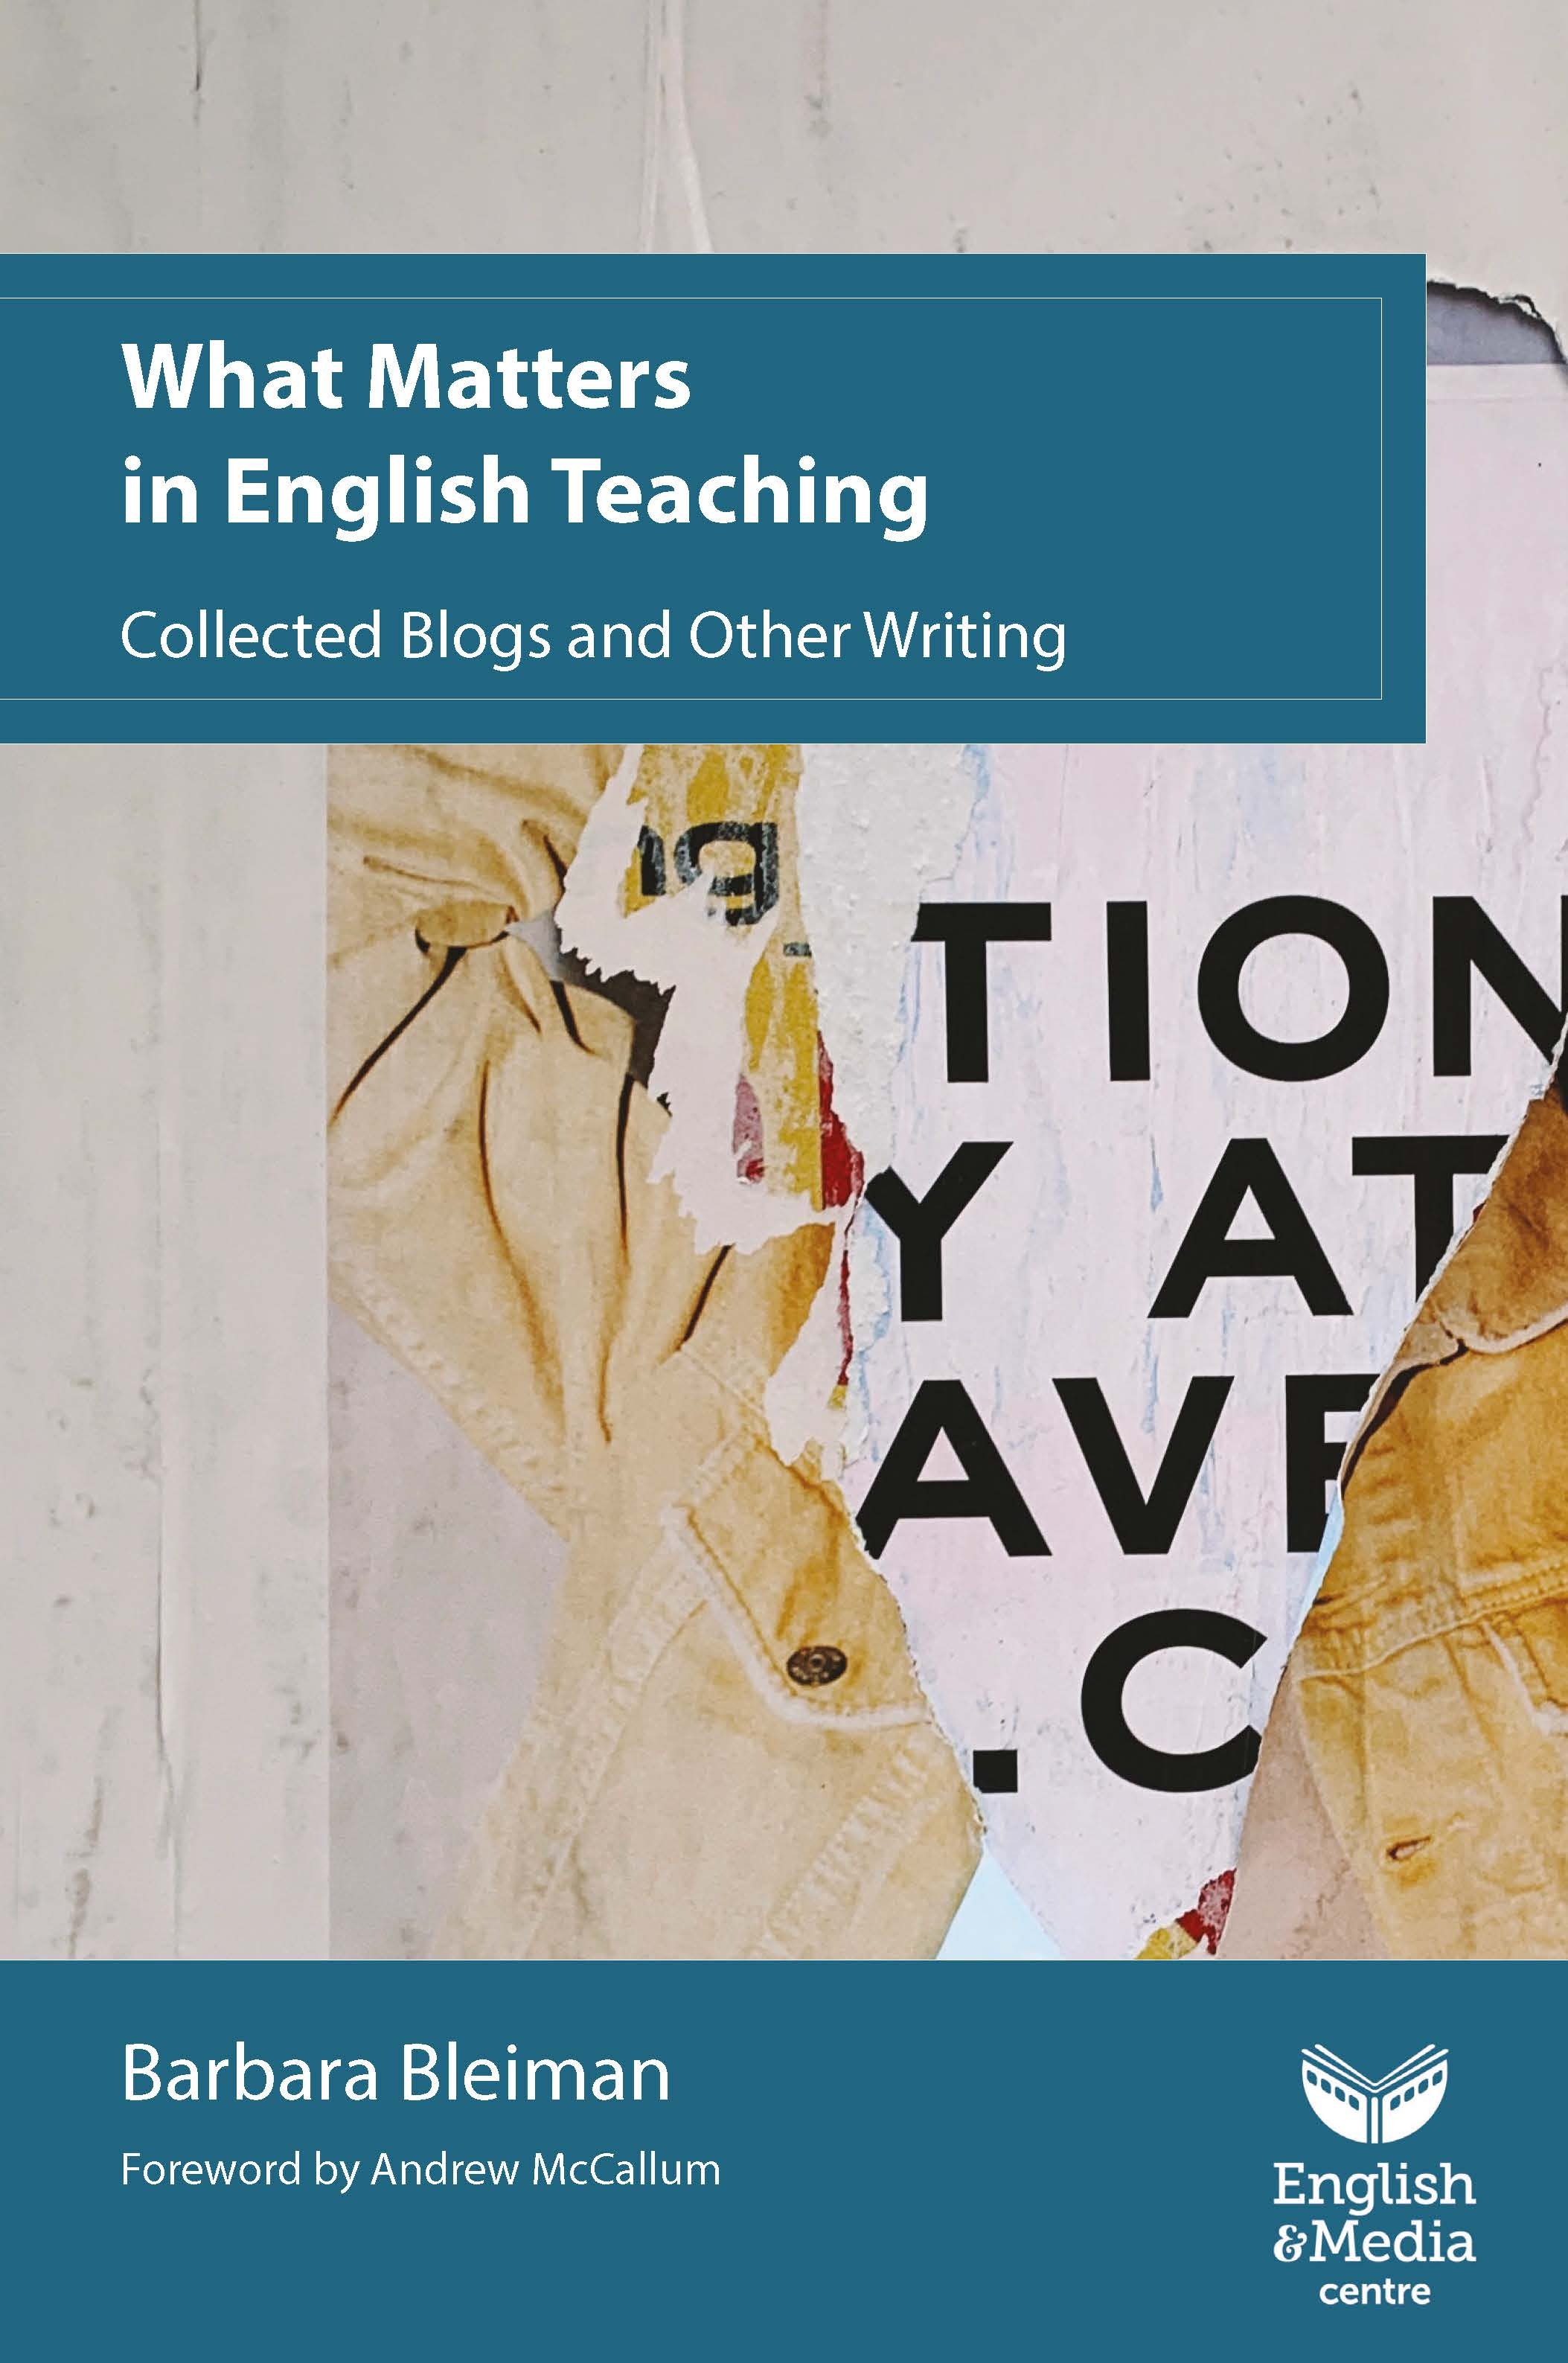 Cover image for What Matters in English Teaching Collected Blogs and Other Writing – Barbara Bleiman